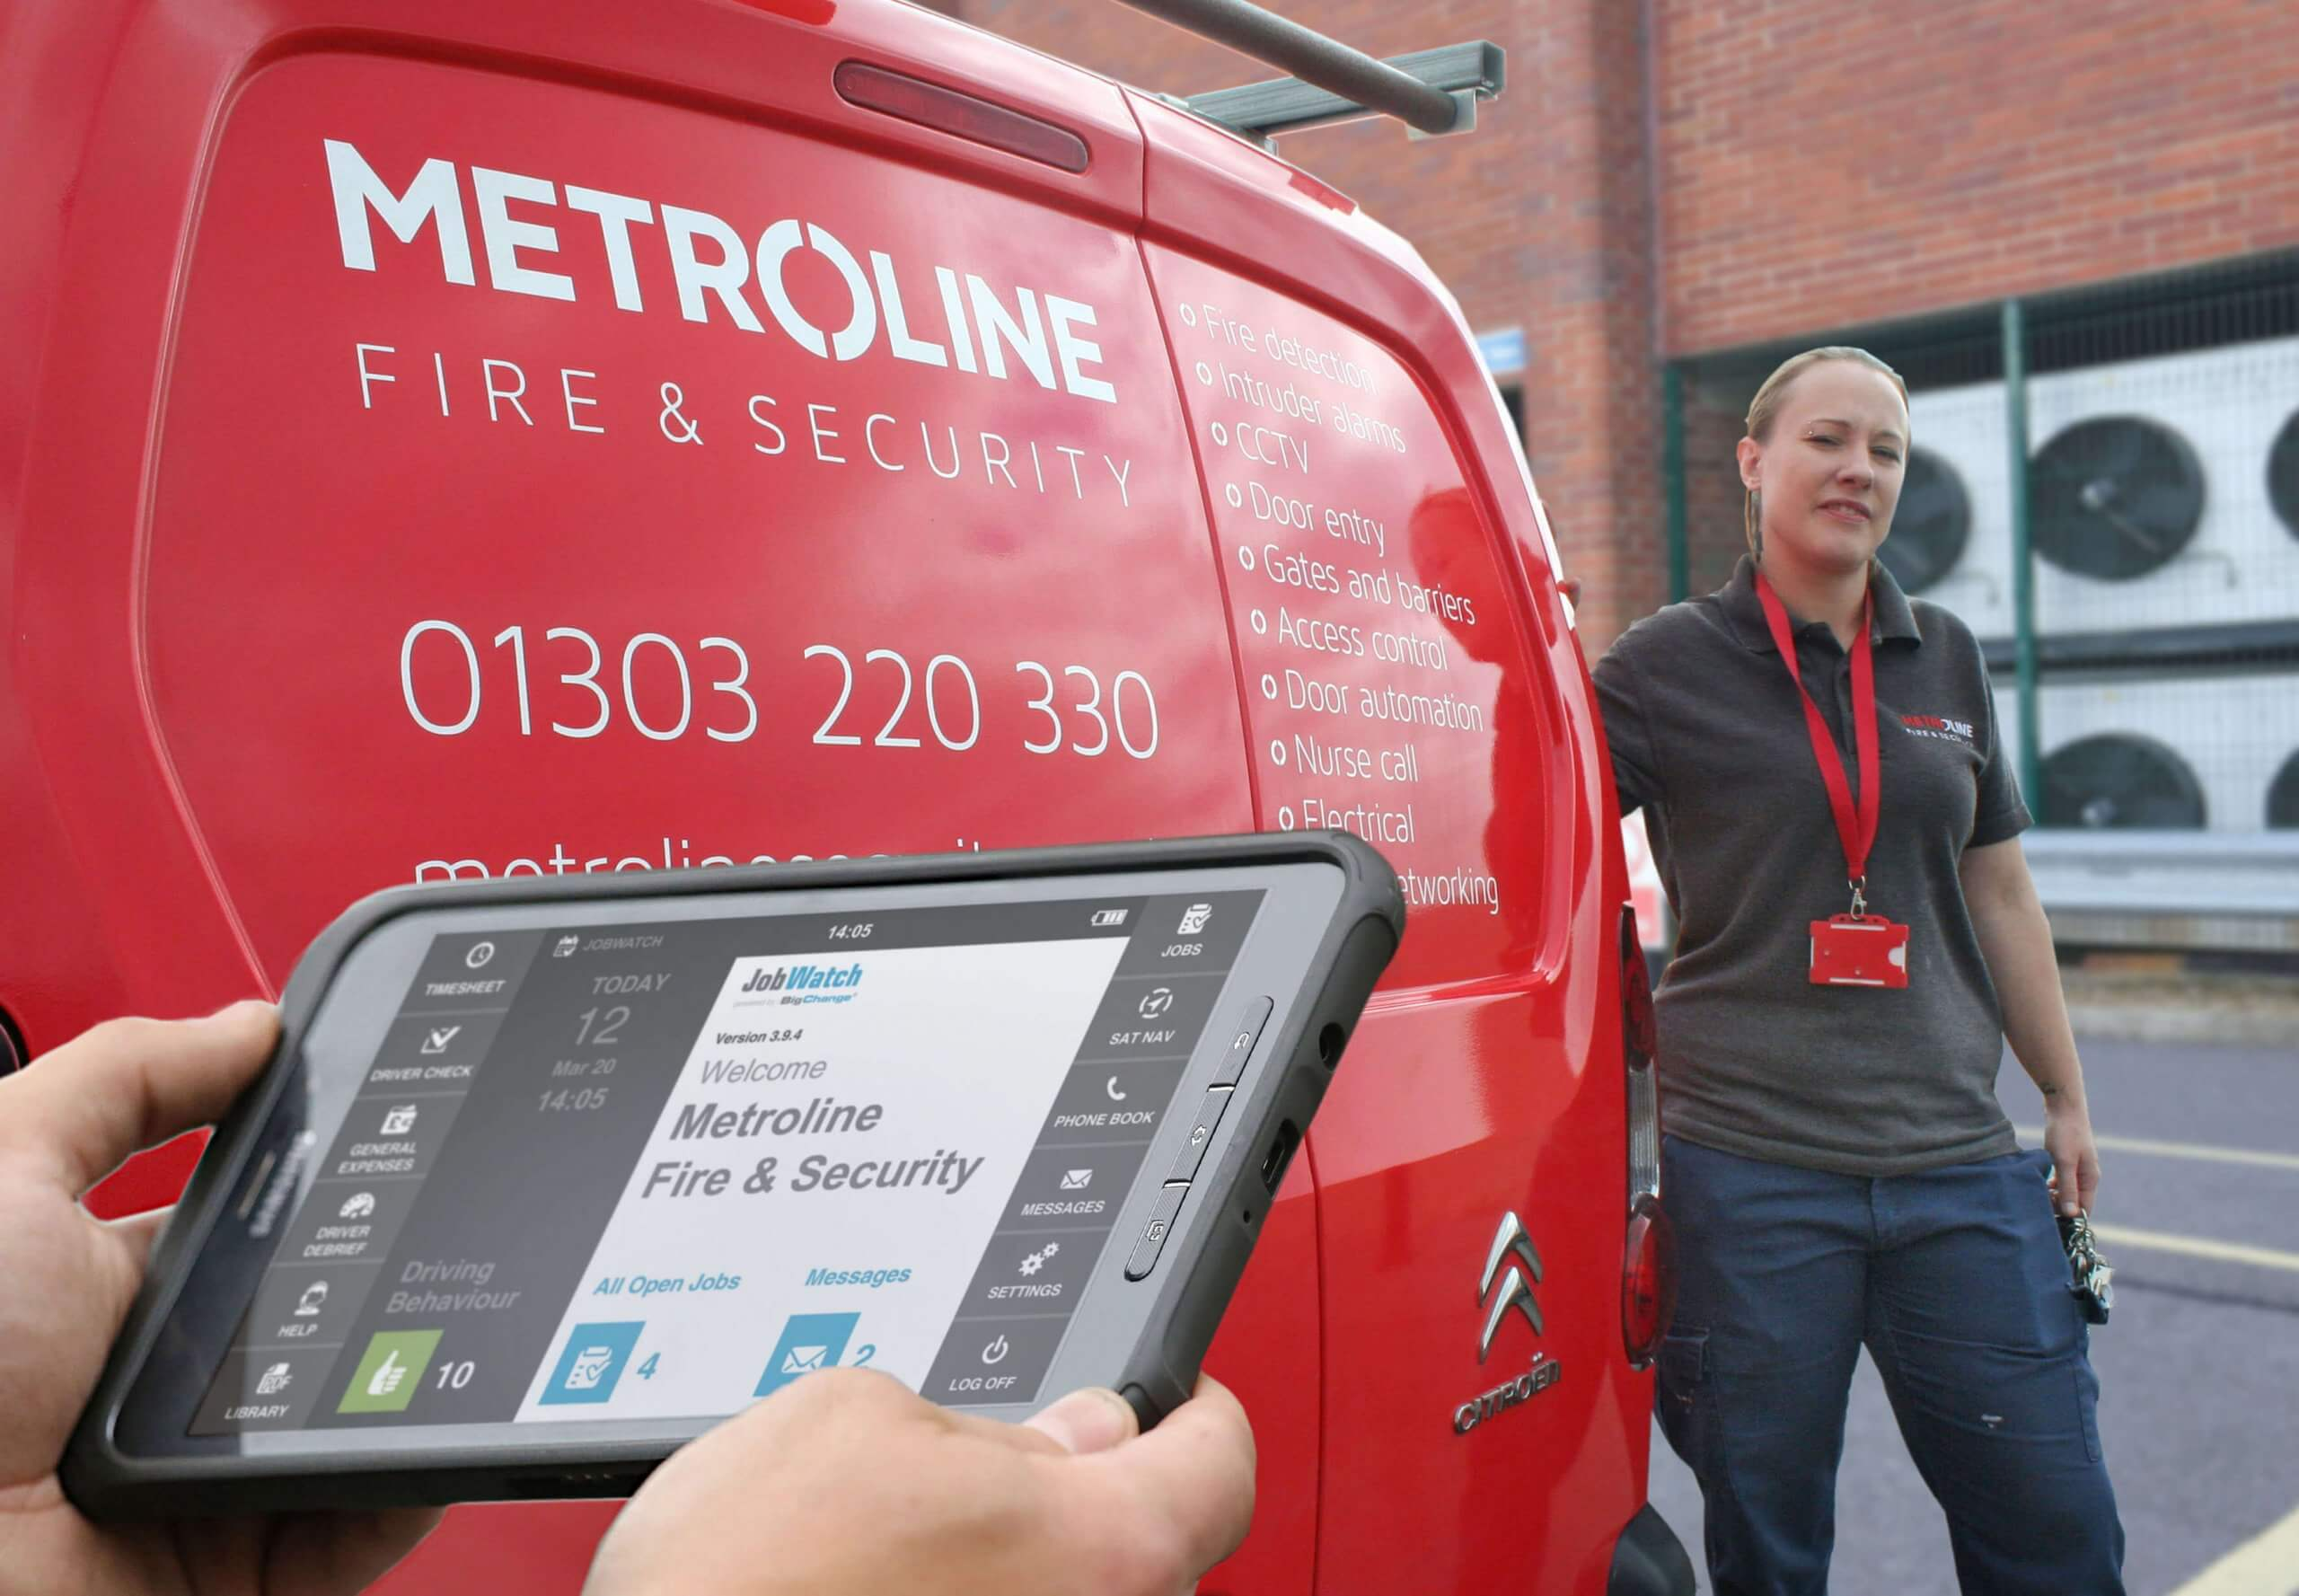 Metroline Fire and Security